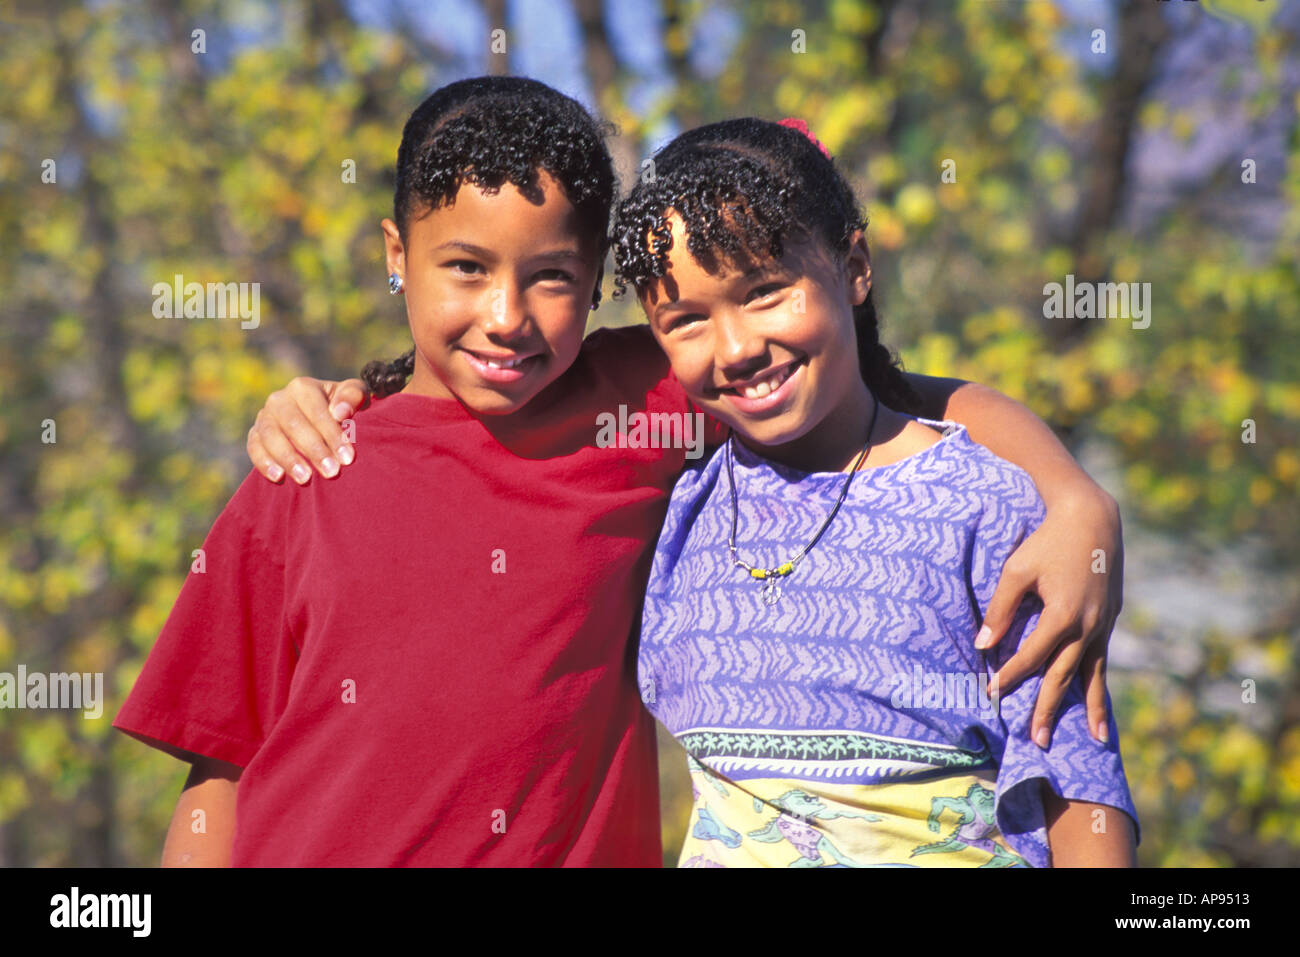 African american girls 1 parution photo stock